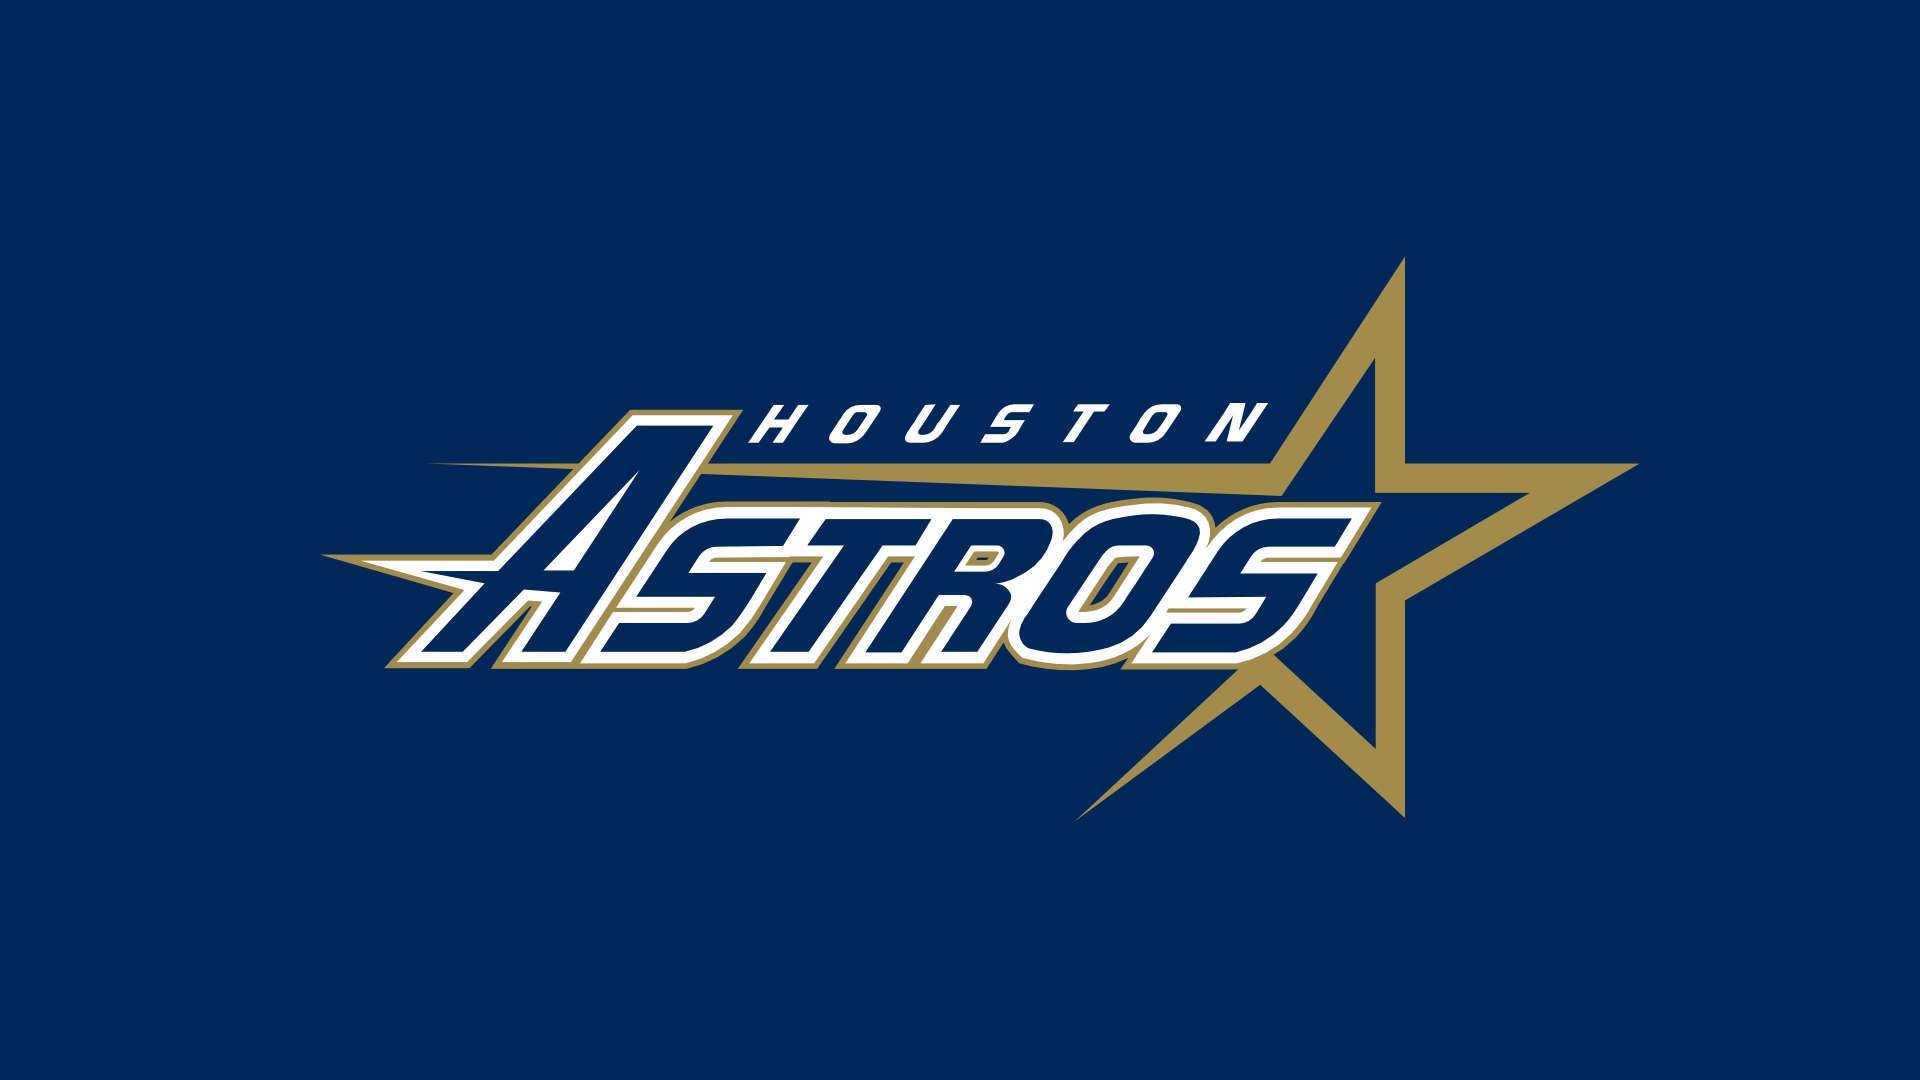 1920x1080 Wallpaper: Houston Astros Logo HD Wallpaper. Upload at April 27, 2014 .